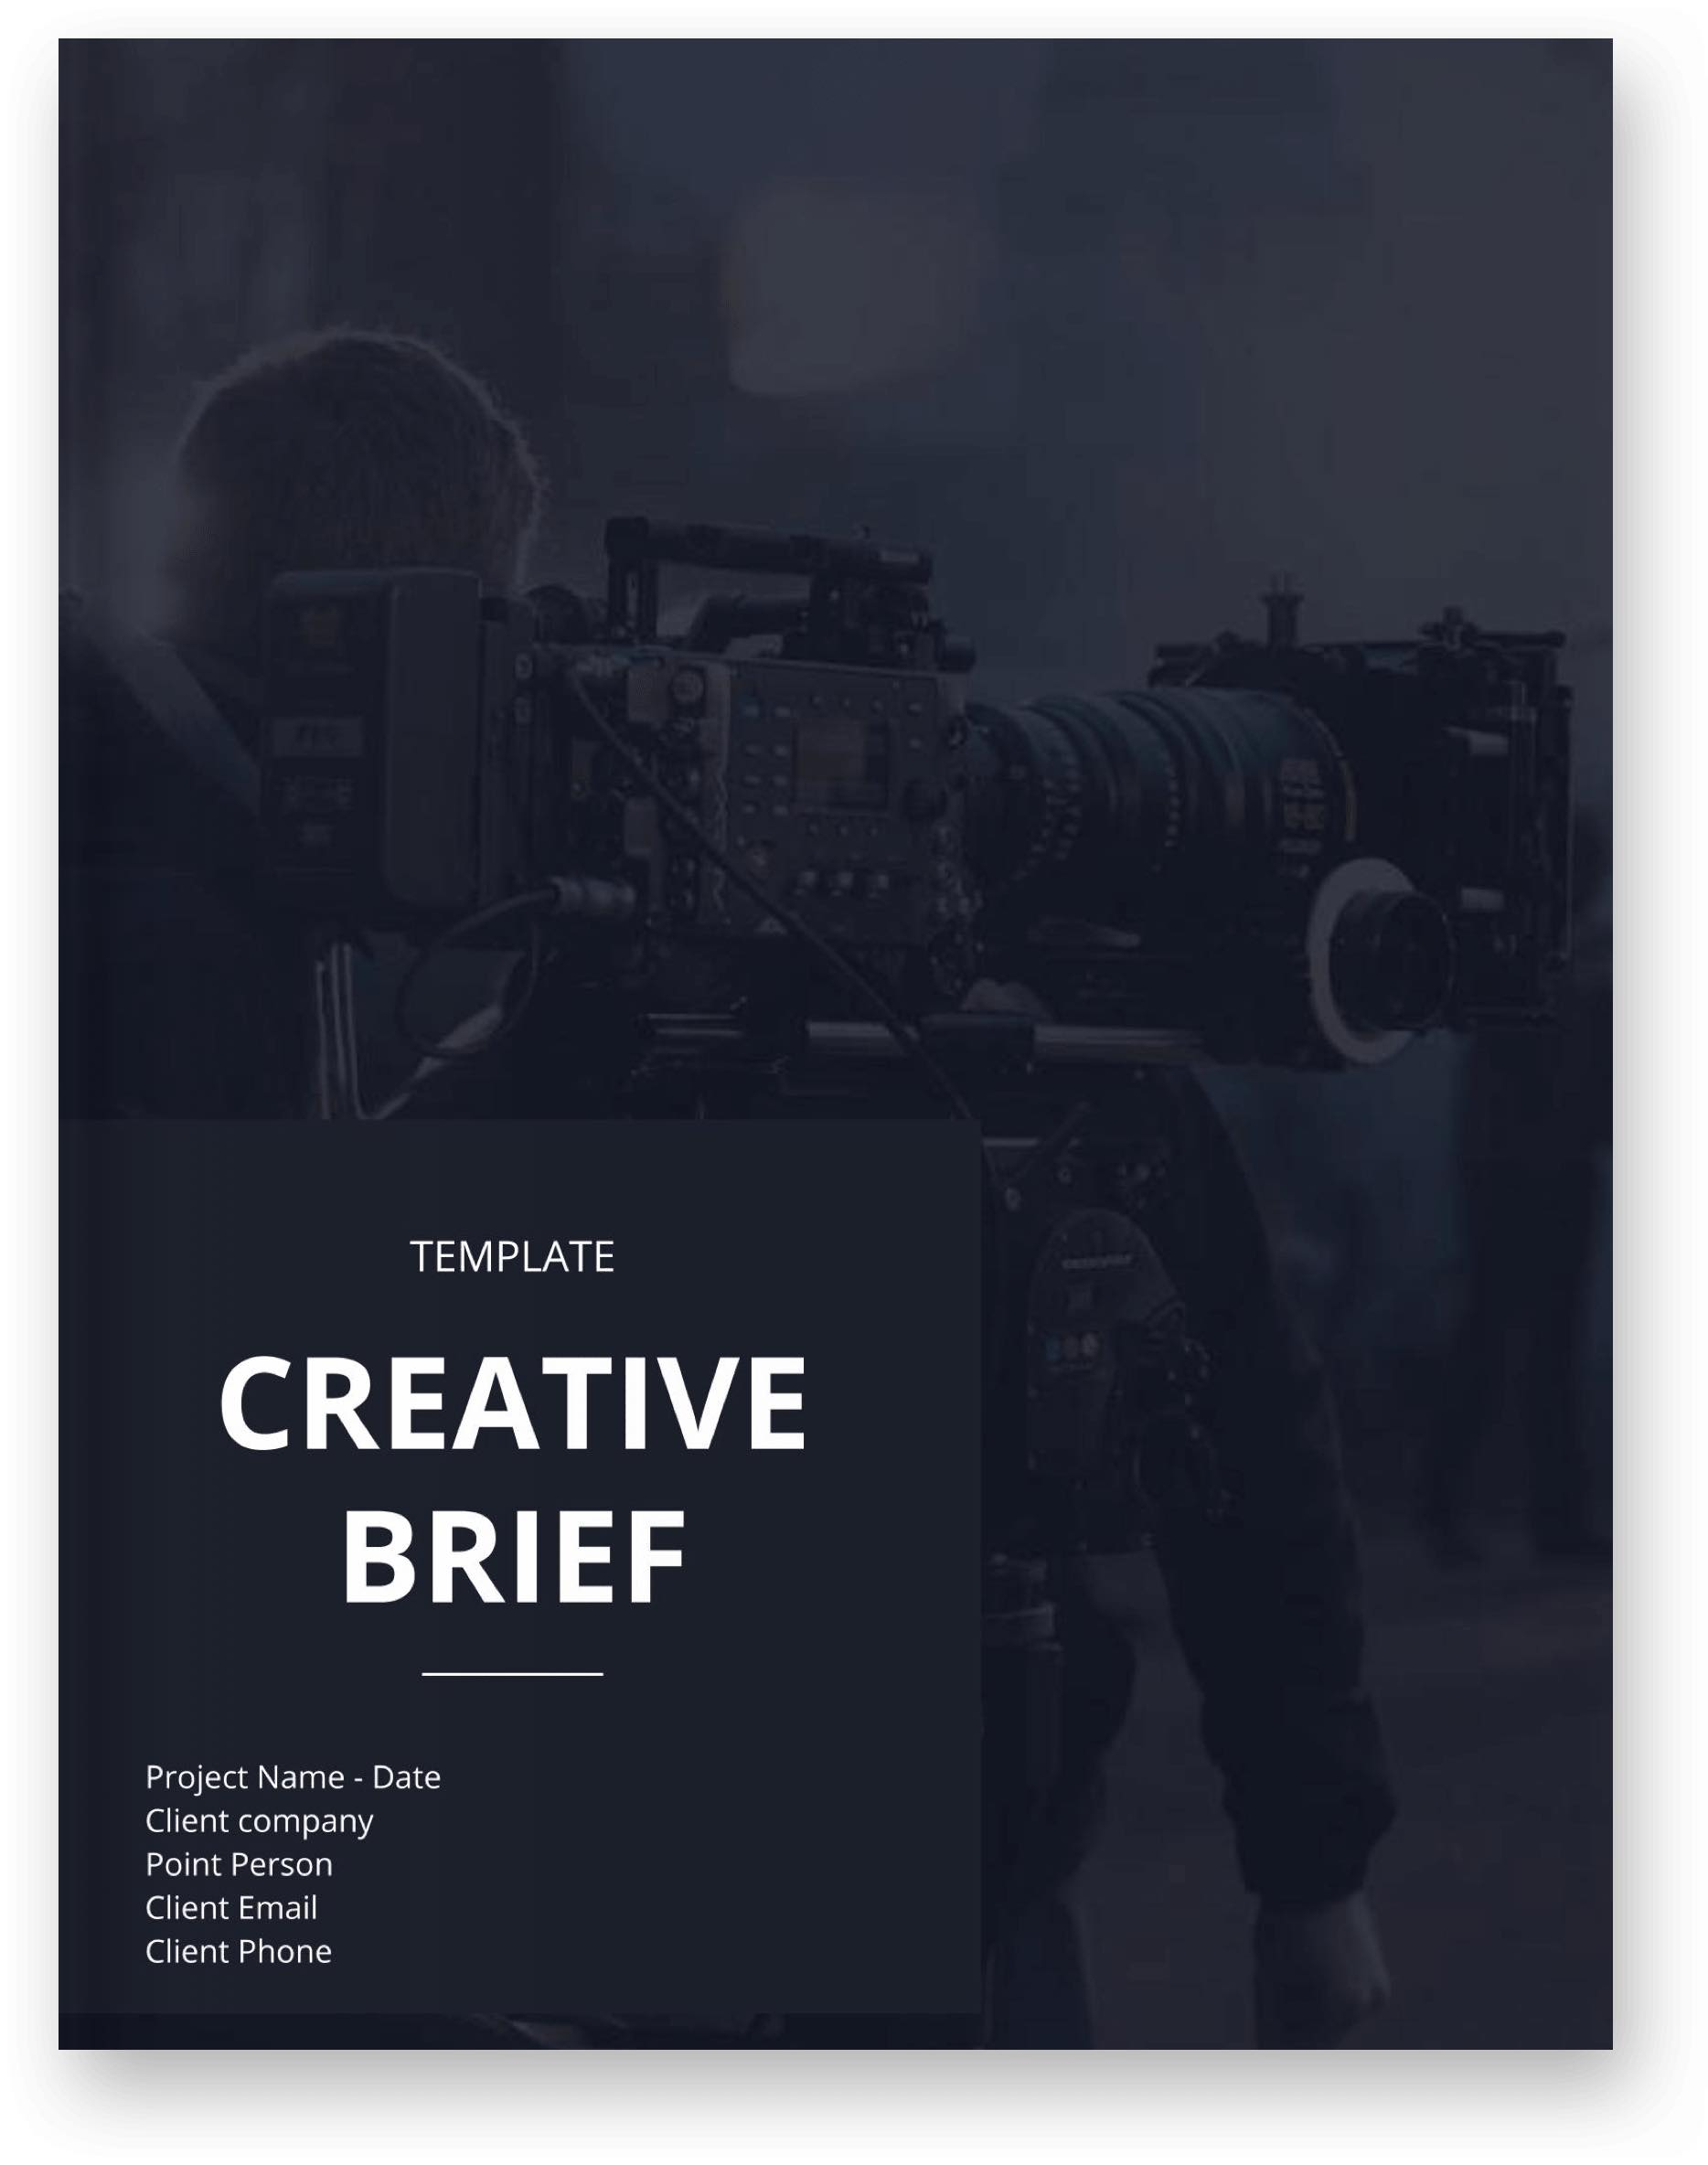 The Best Creative Brief Template For Video Agencies [Free Download] - Cover - StudioBinder